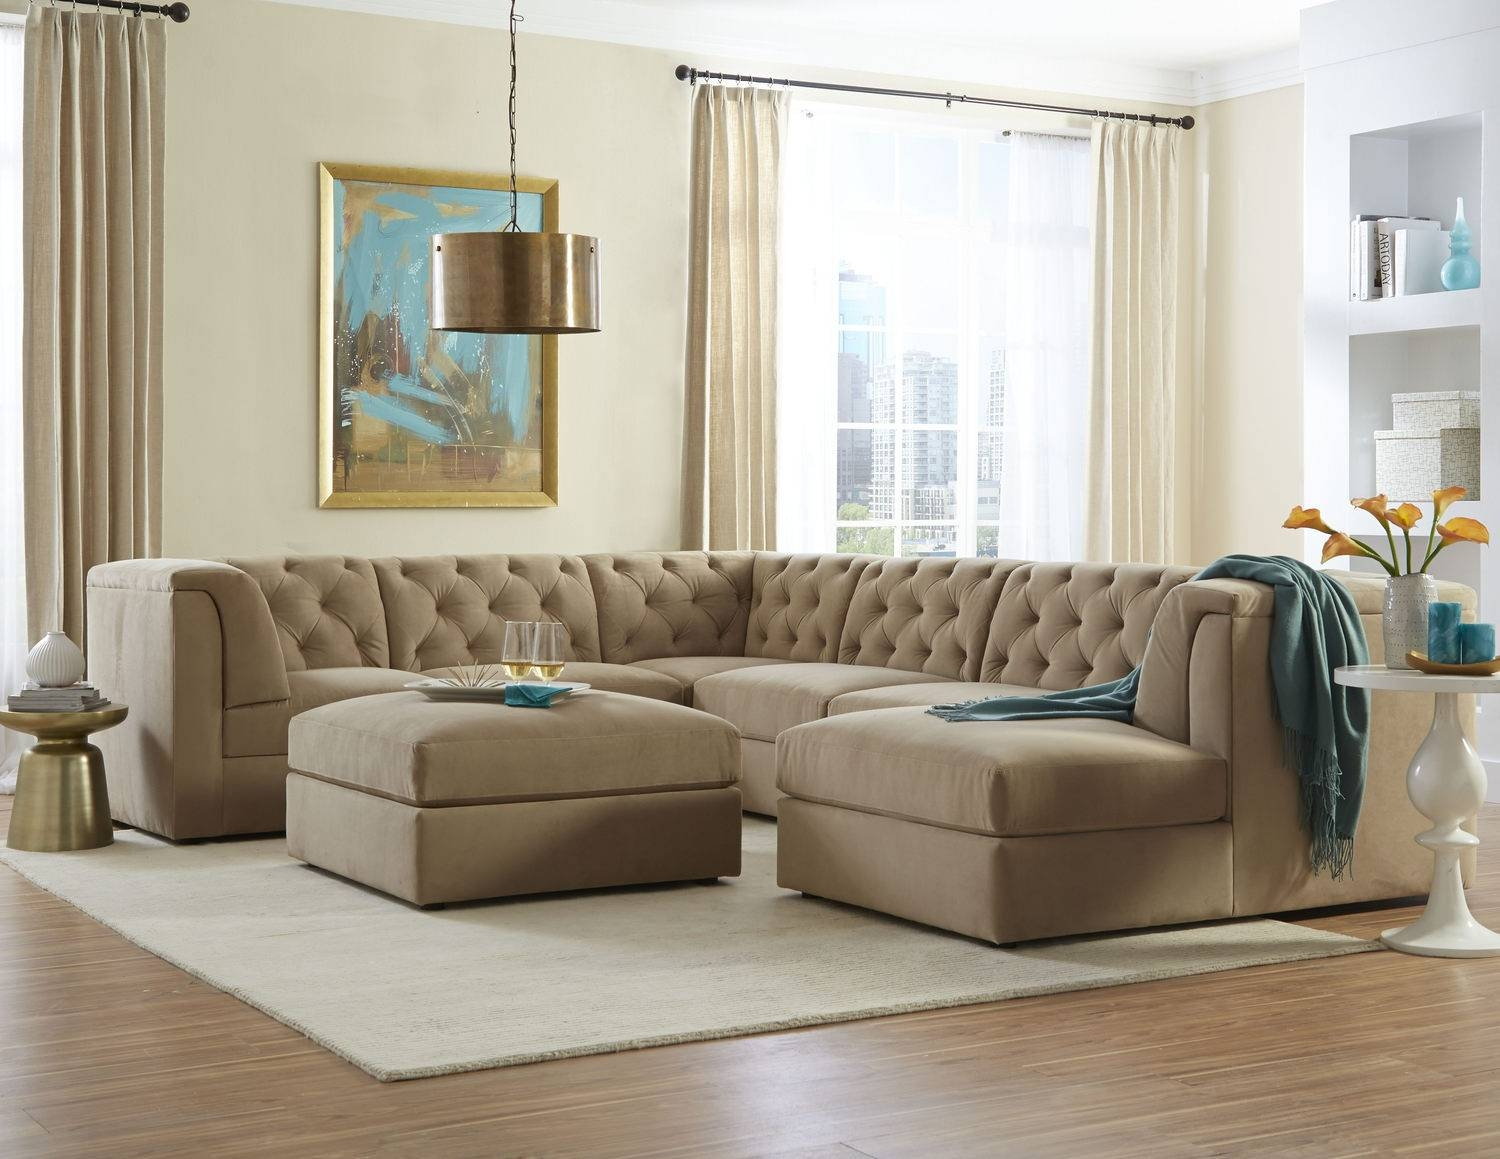 Sofas Center : Stupendous Piece Sectional Sofa Photos Design regarding 6 Piece Leather Sectional Sofa (Image 27 of 30)